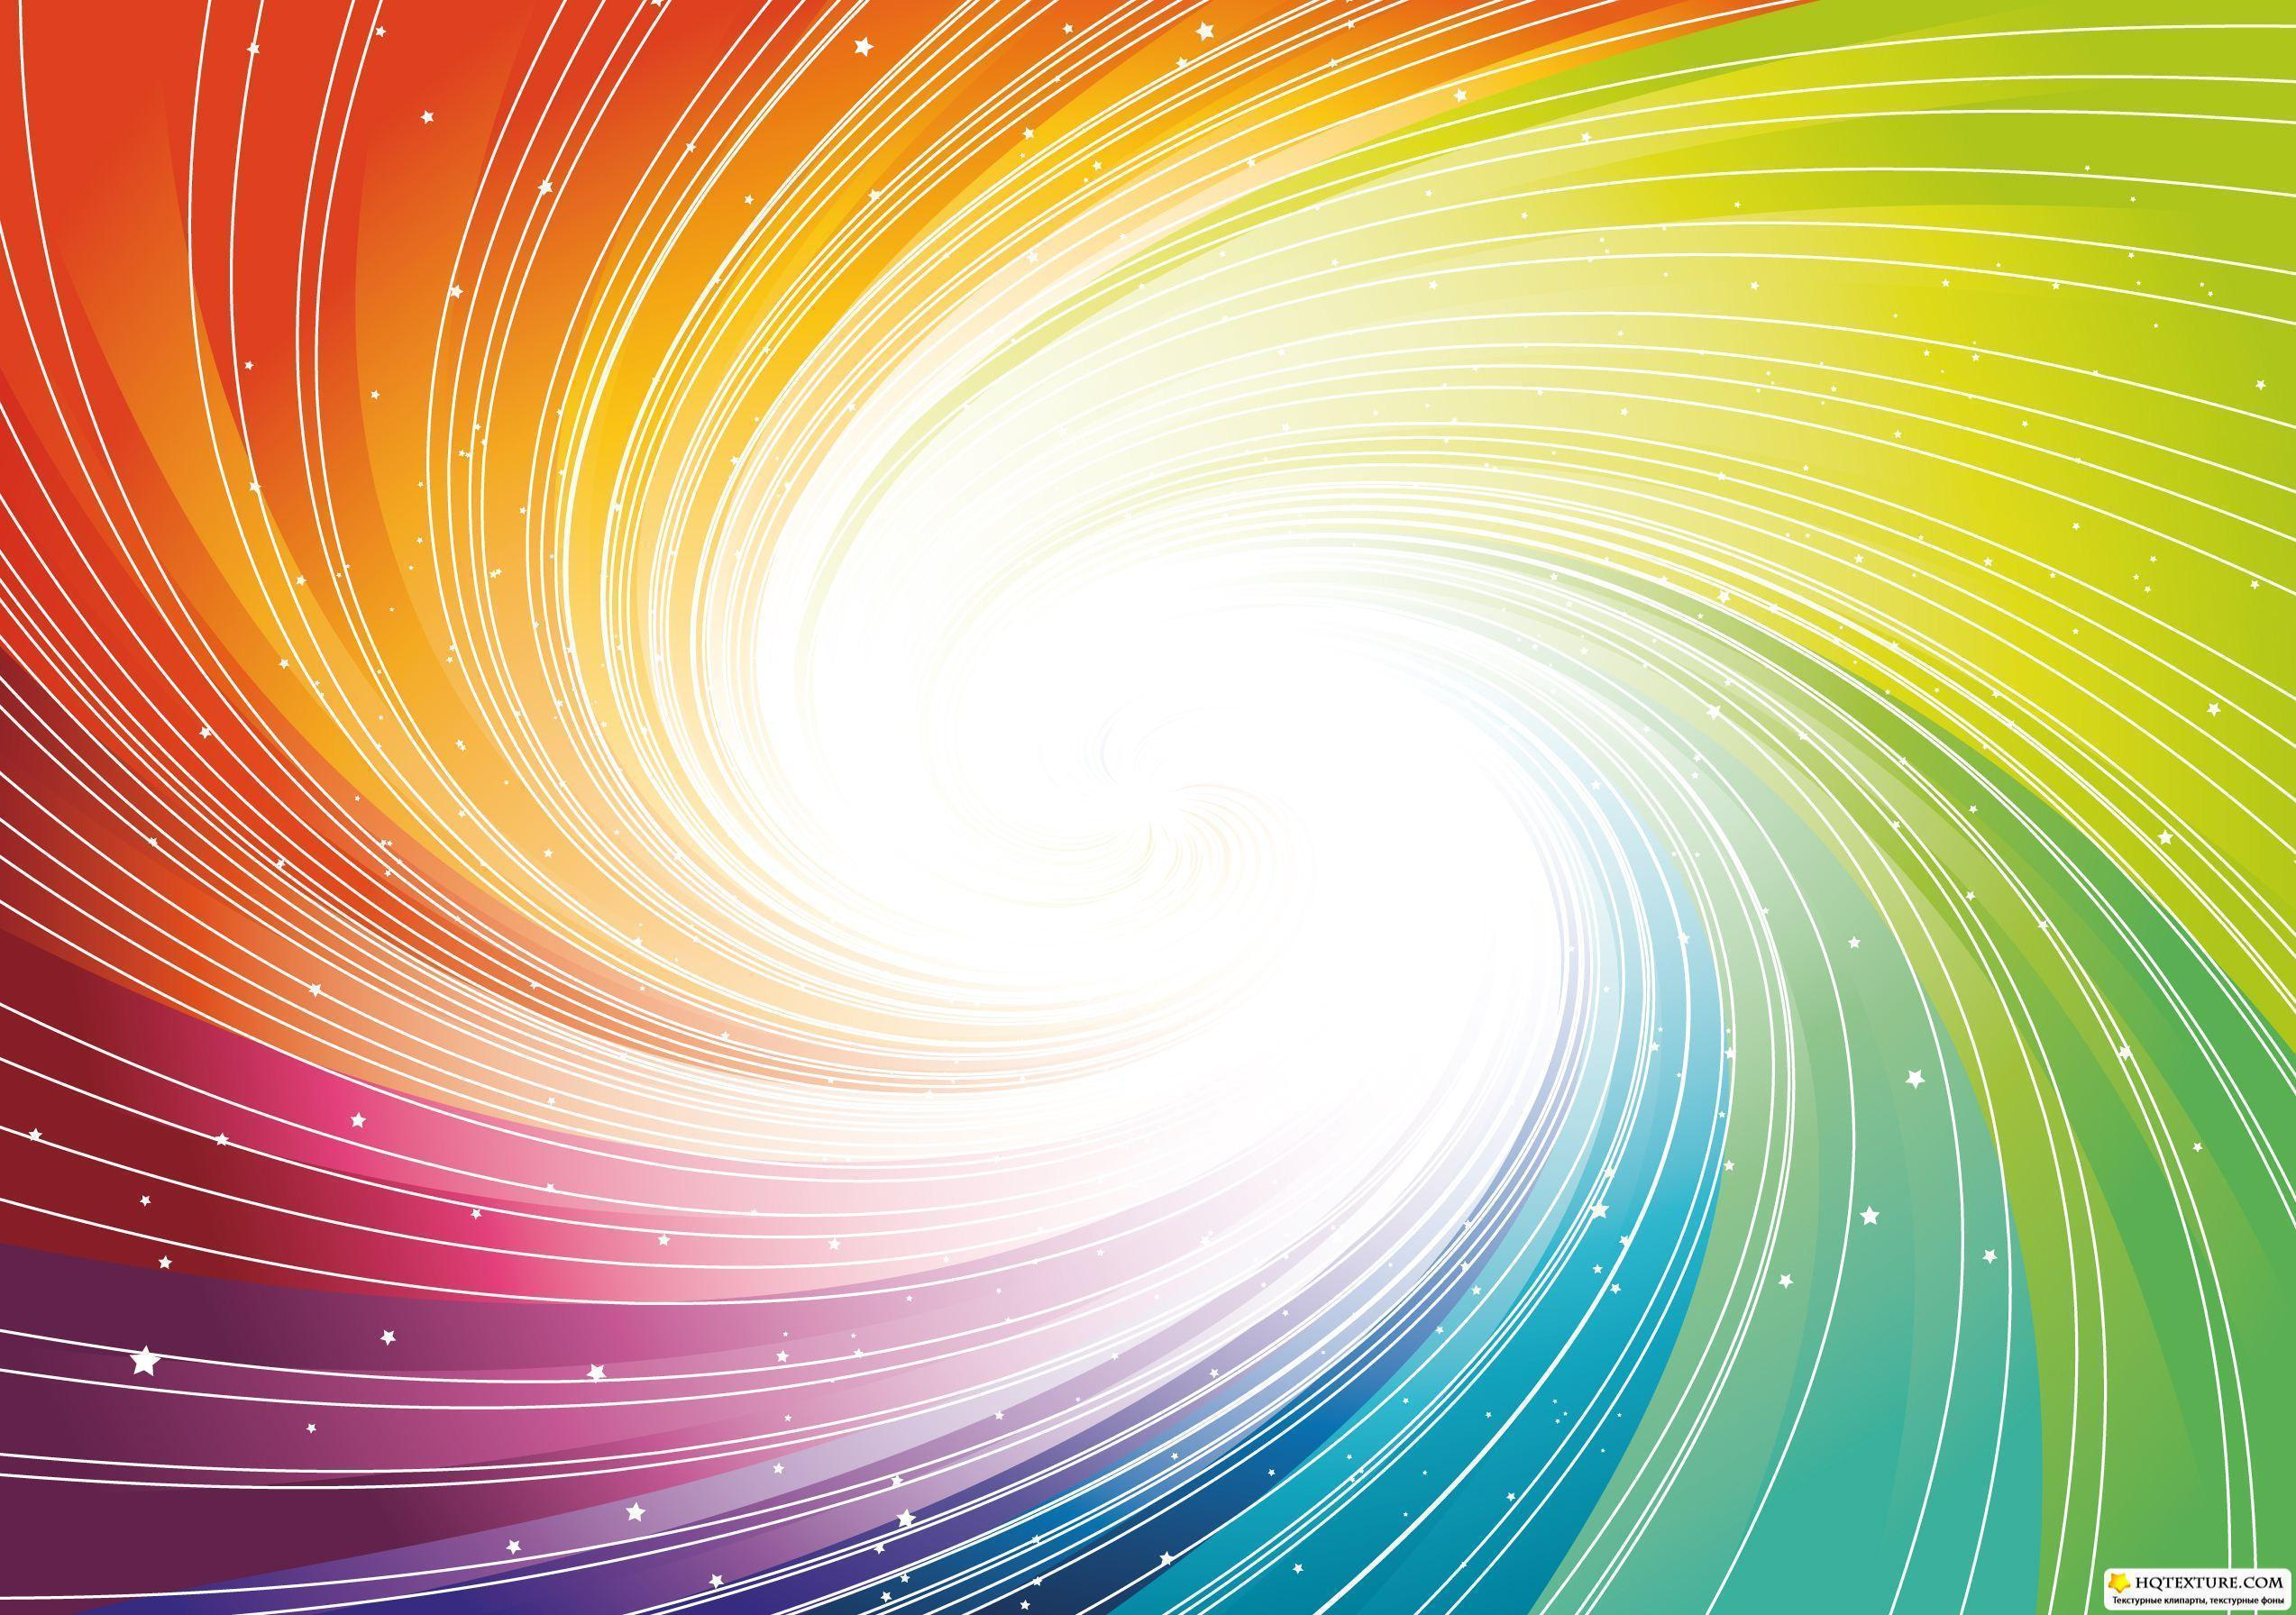 colorful backgrounds image wallpaper cave